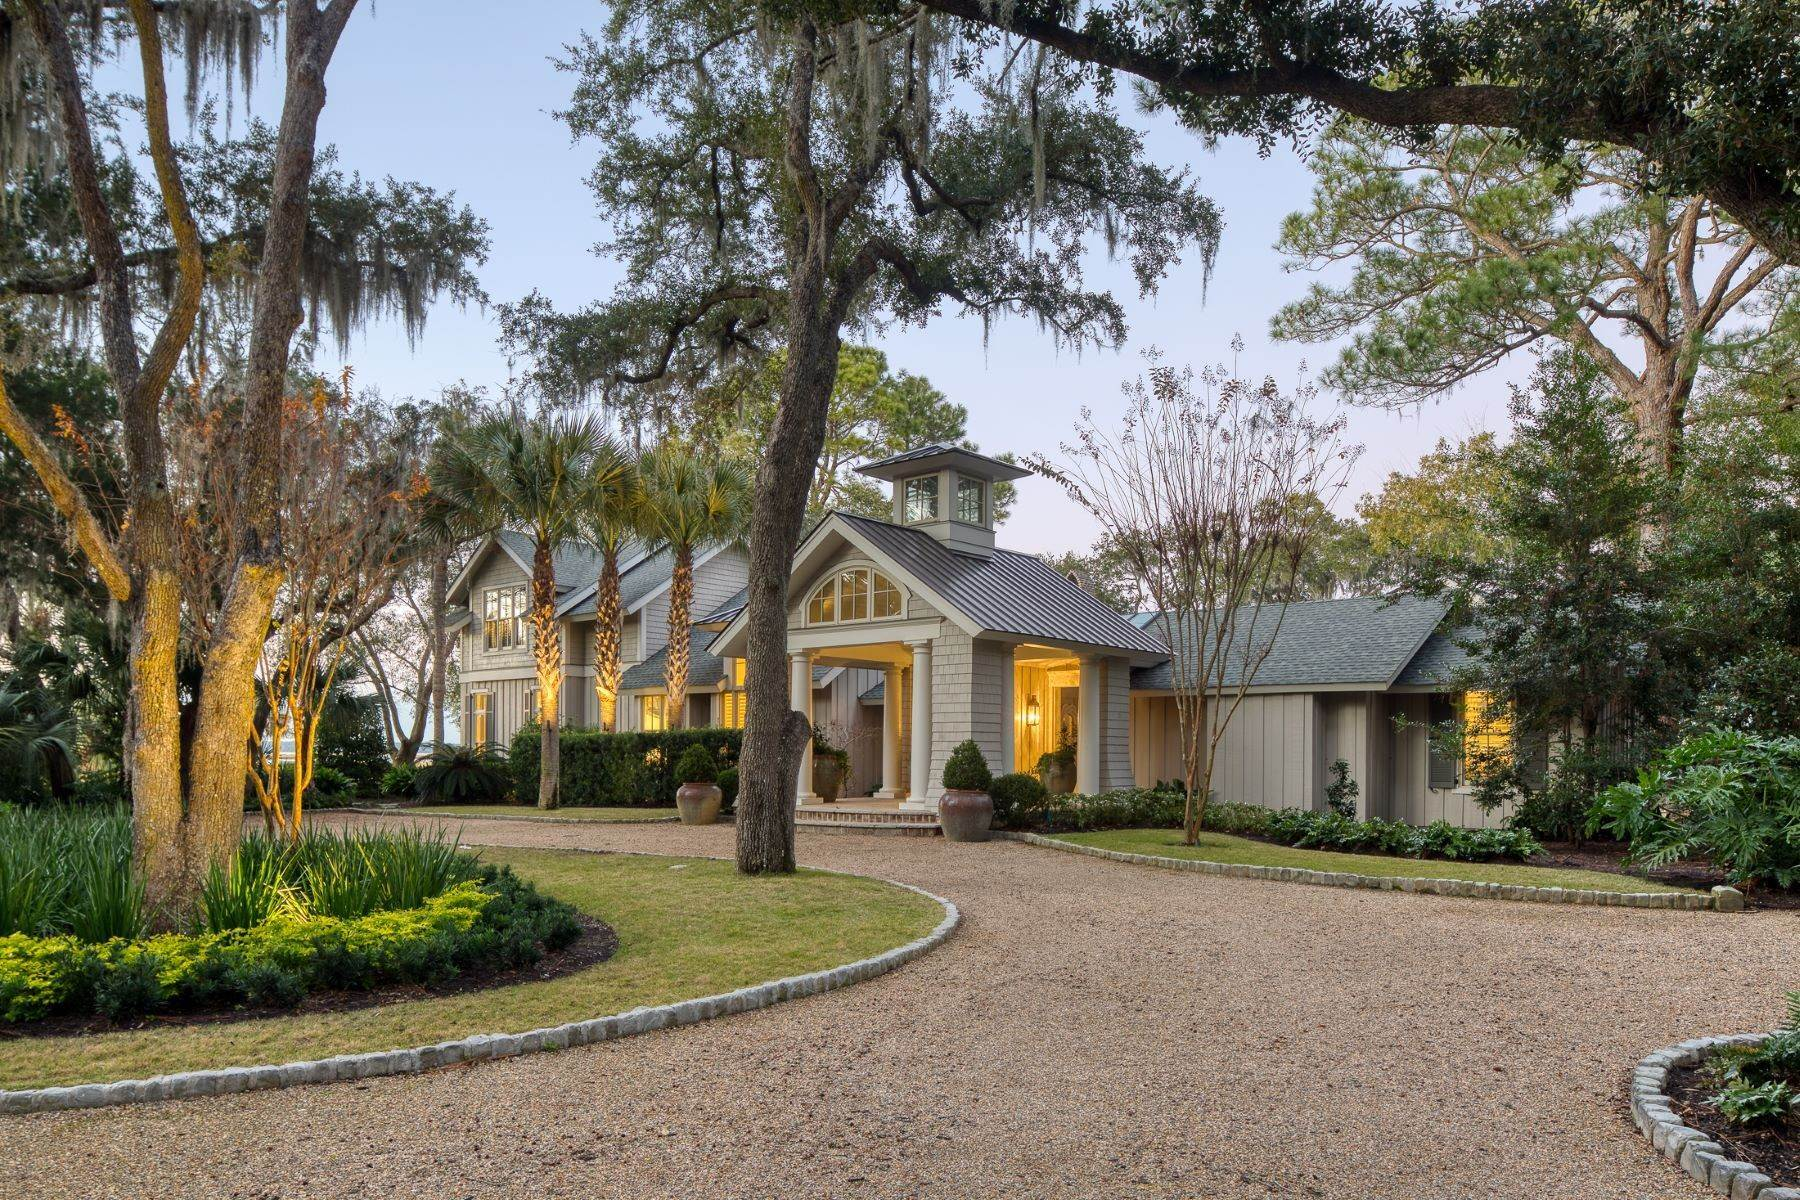 1. Single Family Homes for Sale at Premier Waterfront 71 North Calibogue Cay Hilton Head Island, South Carolina 29928 United States